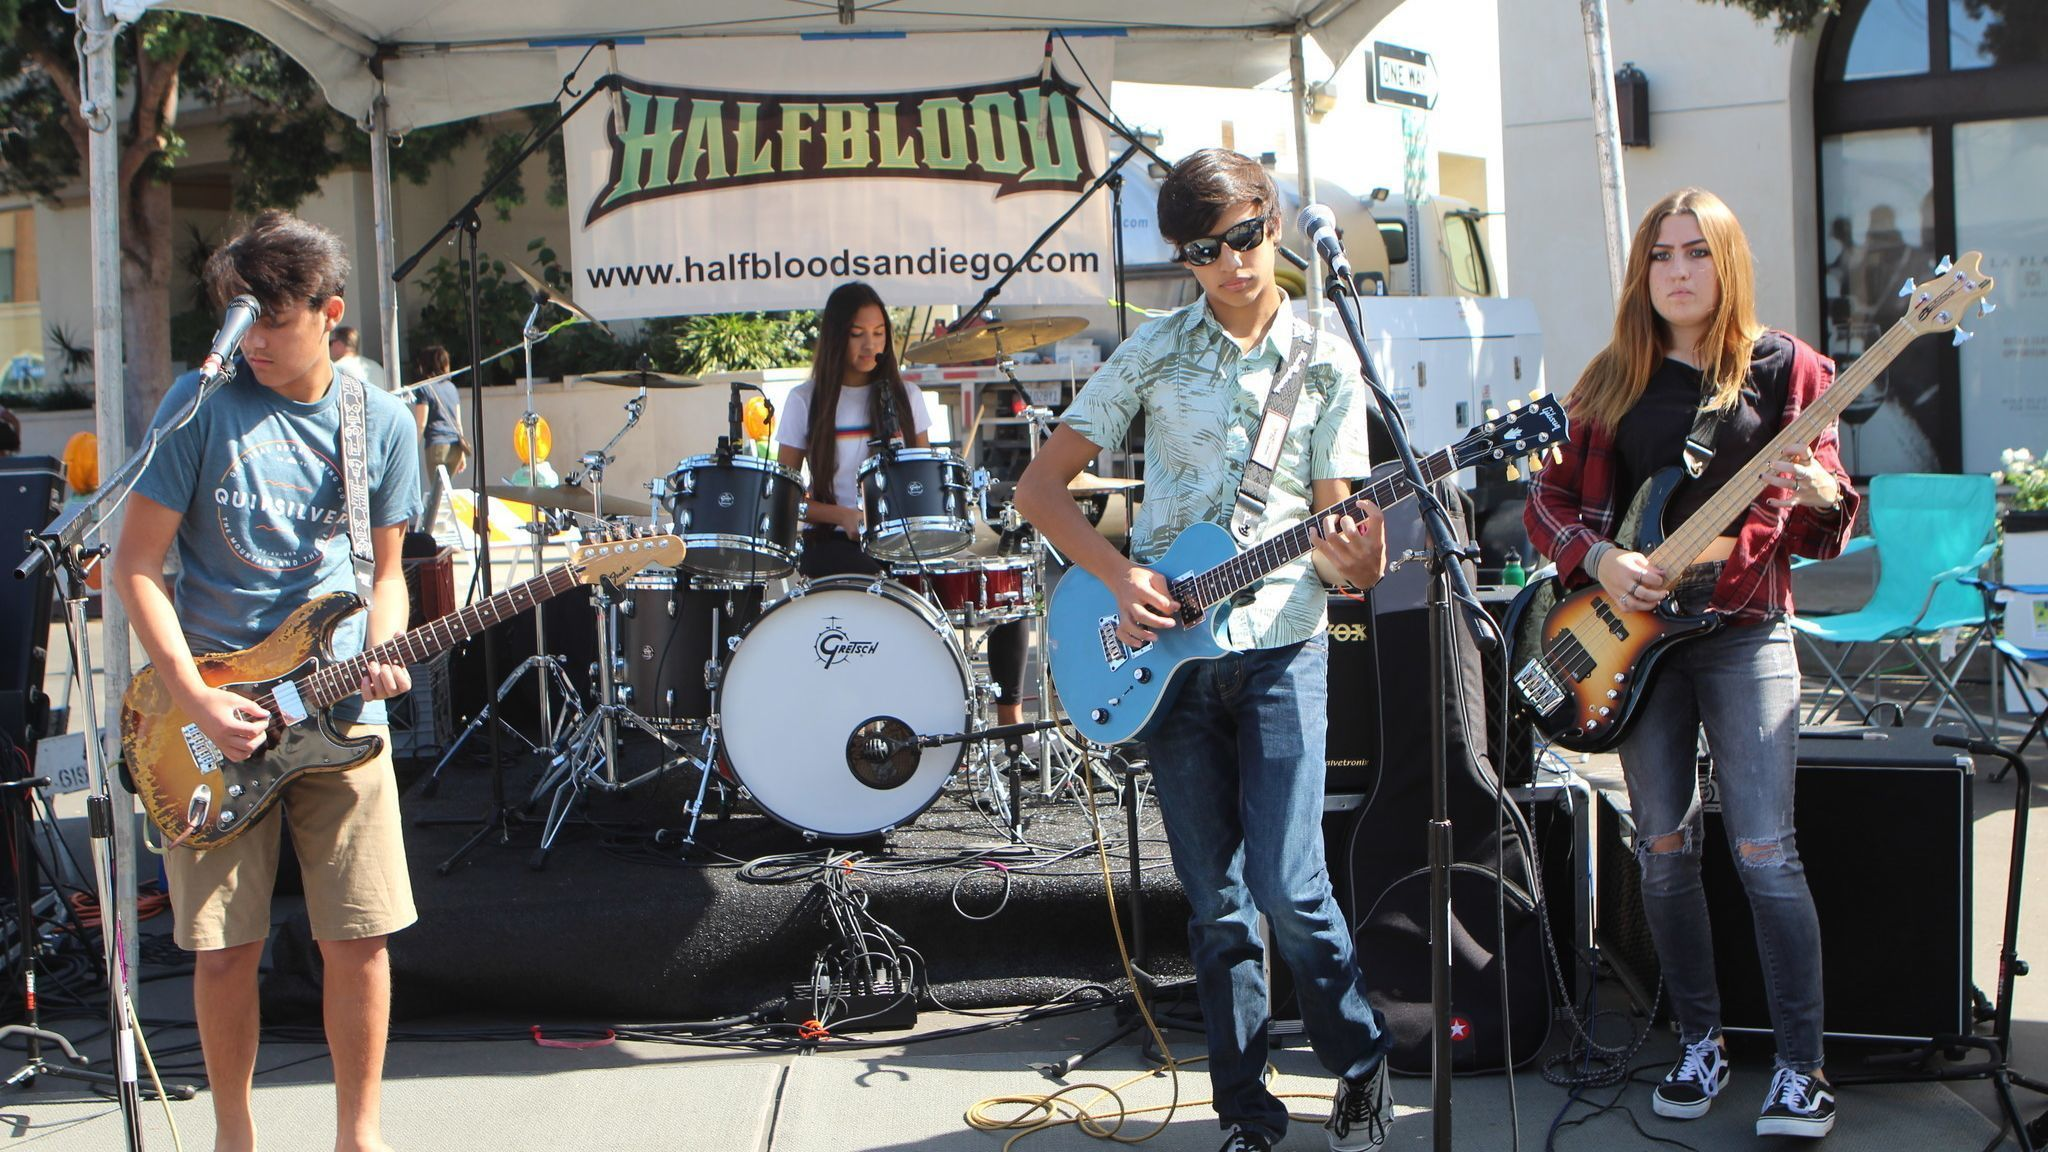 San Diego high-school band Halfblood performs well-received original rock 'n' roll.